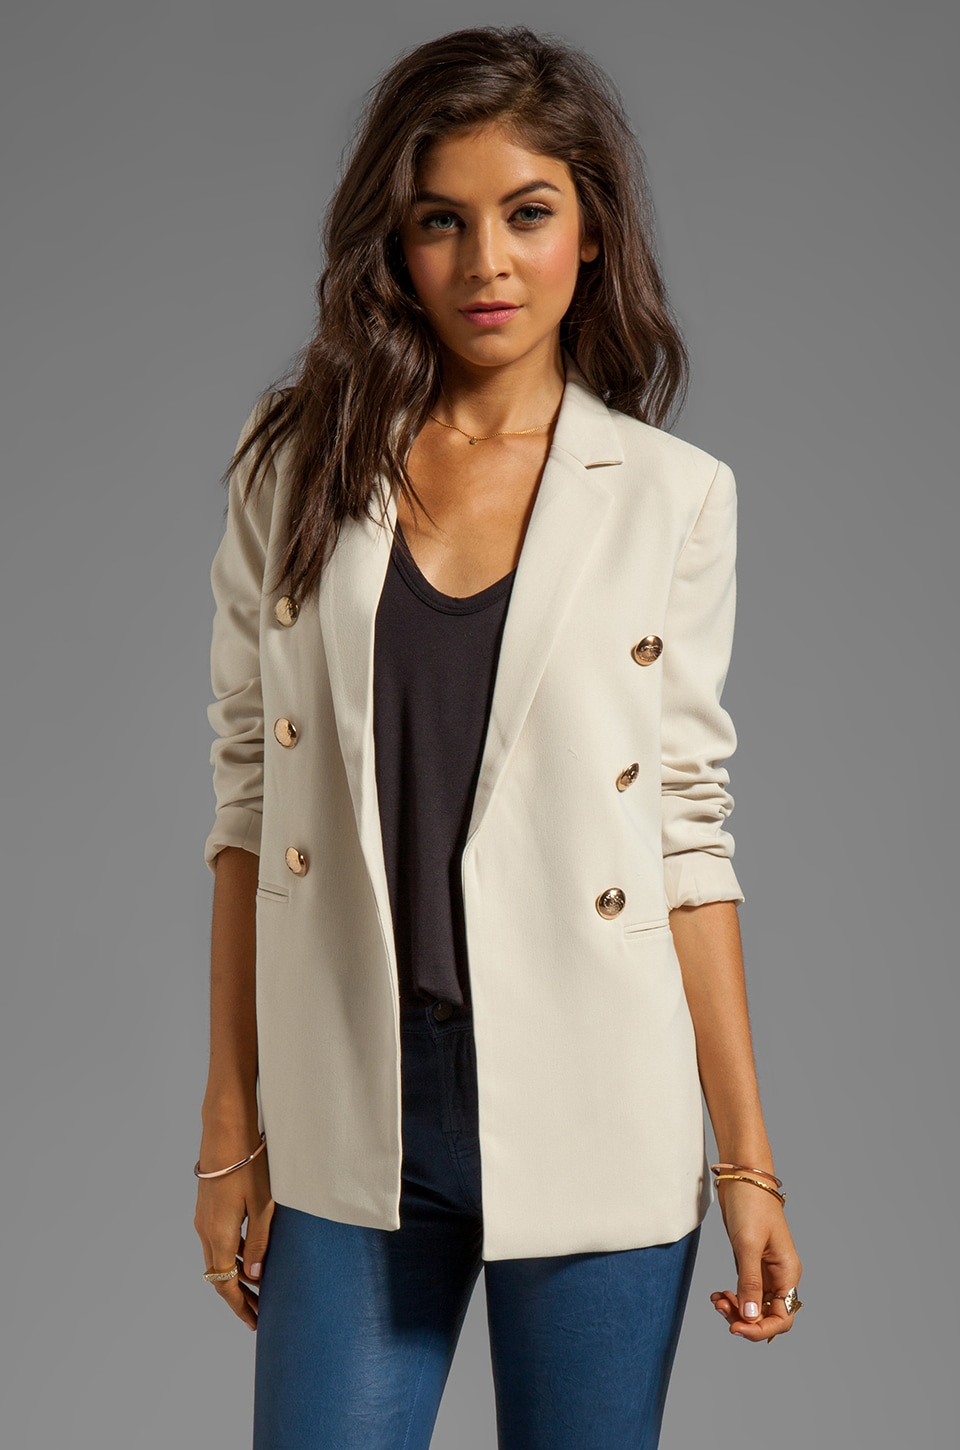 BLAQUE LABEL Jacket in Cream